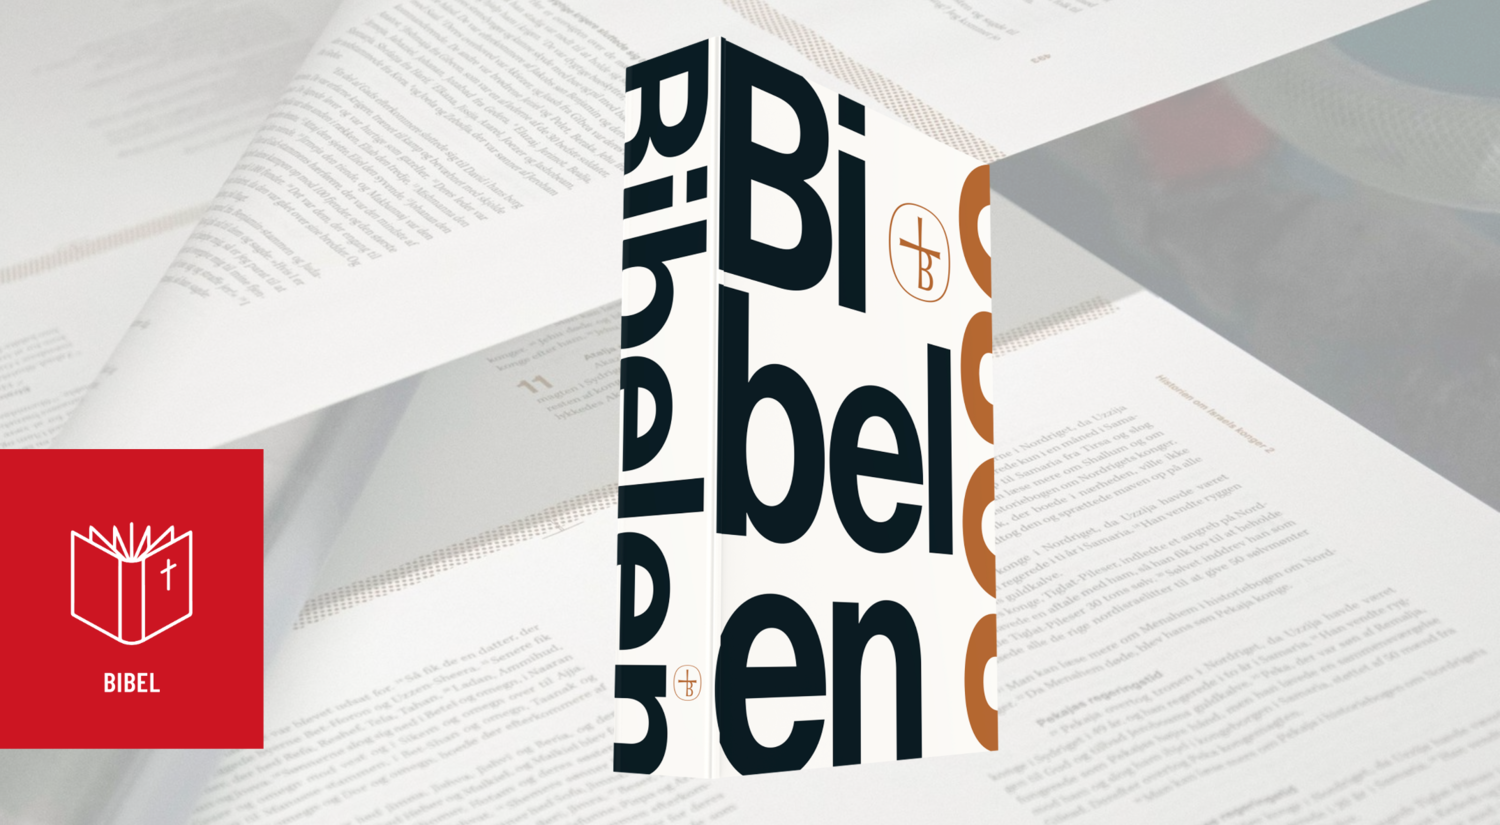 Michael Brown on The Danish Translation of the Bible That Removes Israel from the New Testament